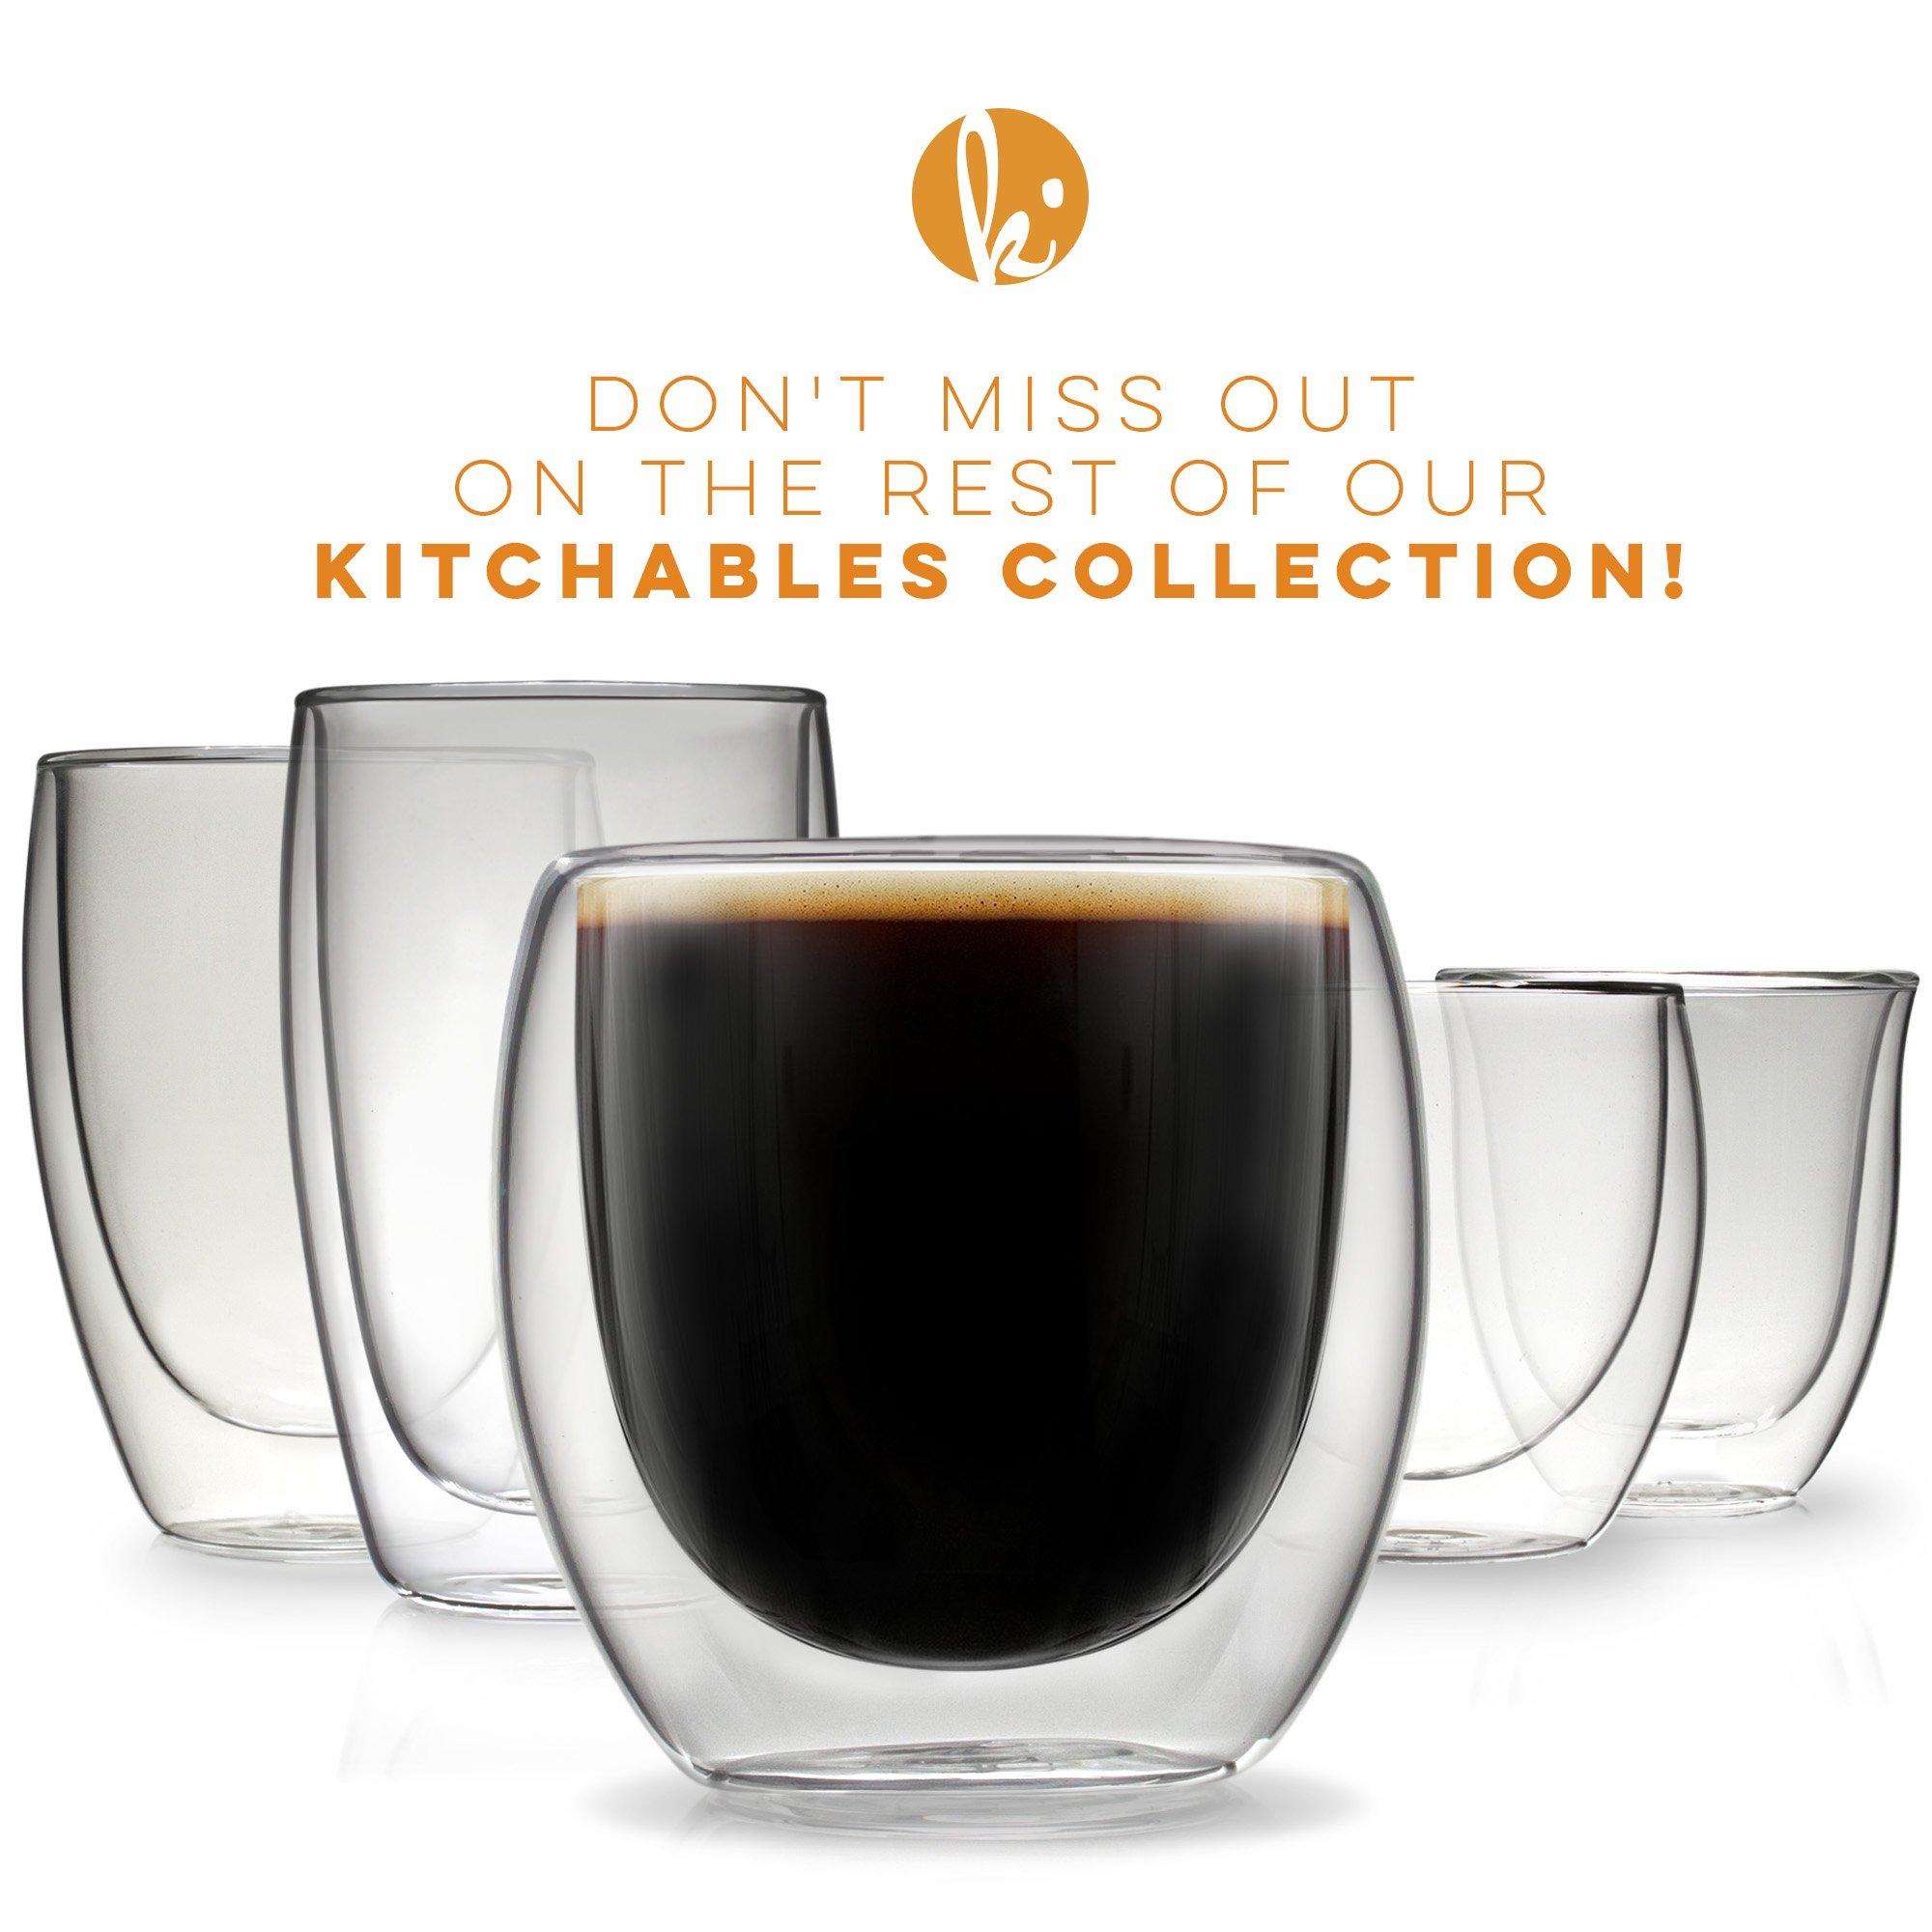 Espresso Cups Shot Glass Coffee Set of 4 - Double Wall Thermo Insulated by Kitchables (Image #7)